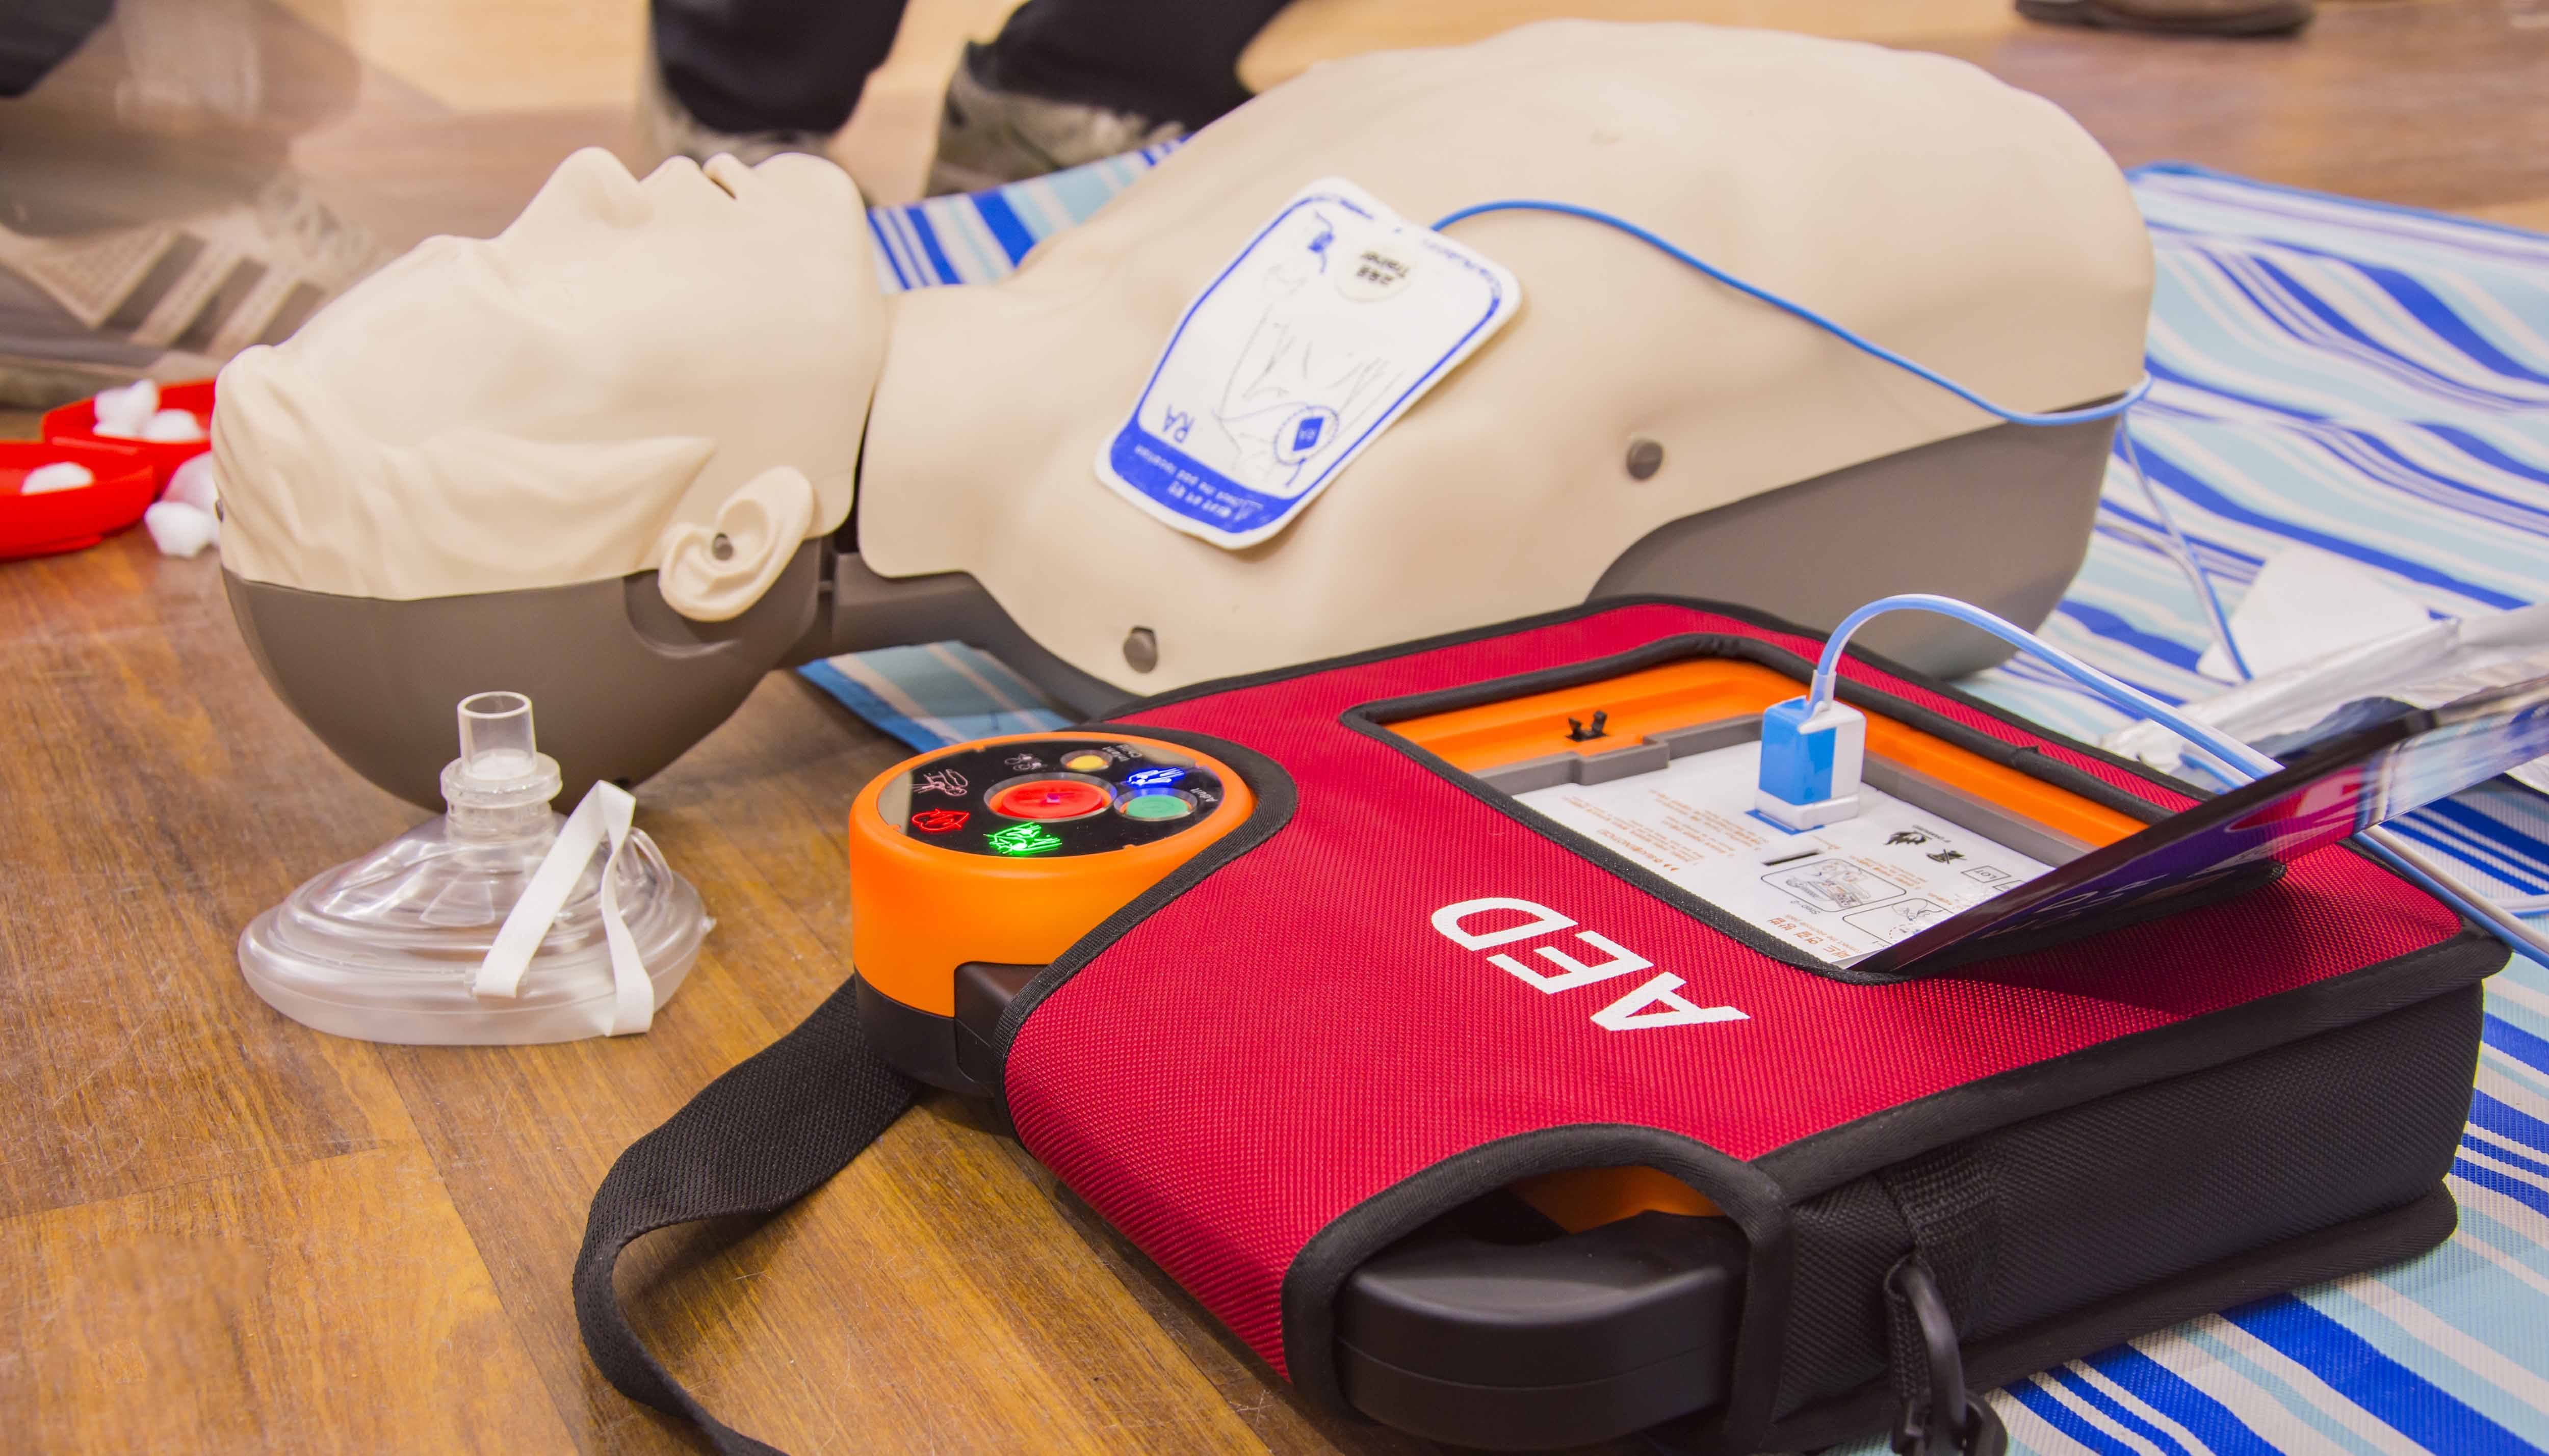 Saving Lives With Gus: Automated External Defibrillator (AED)